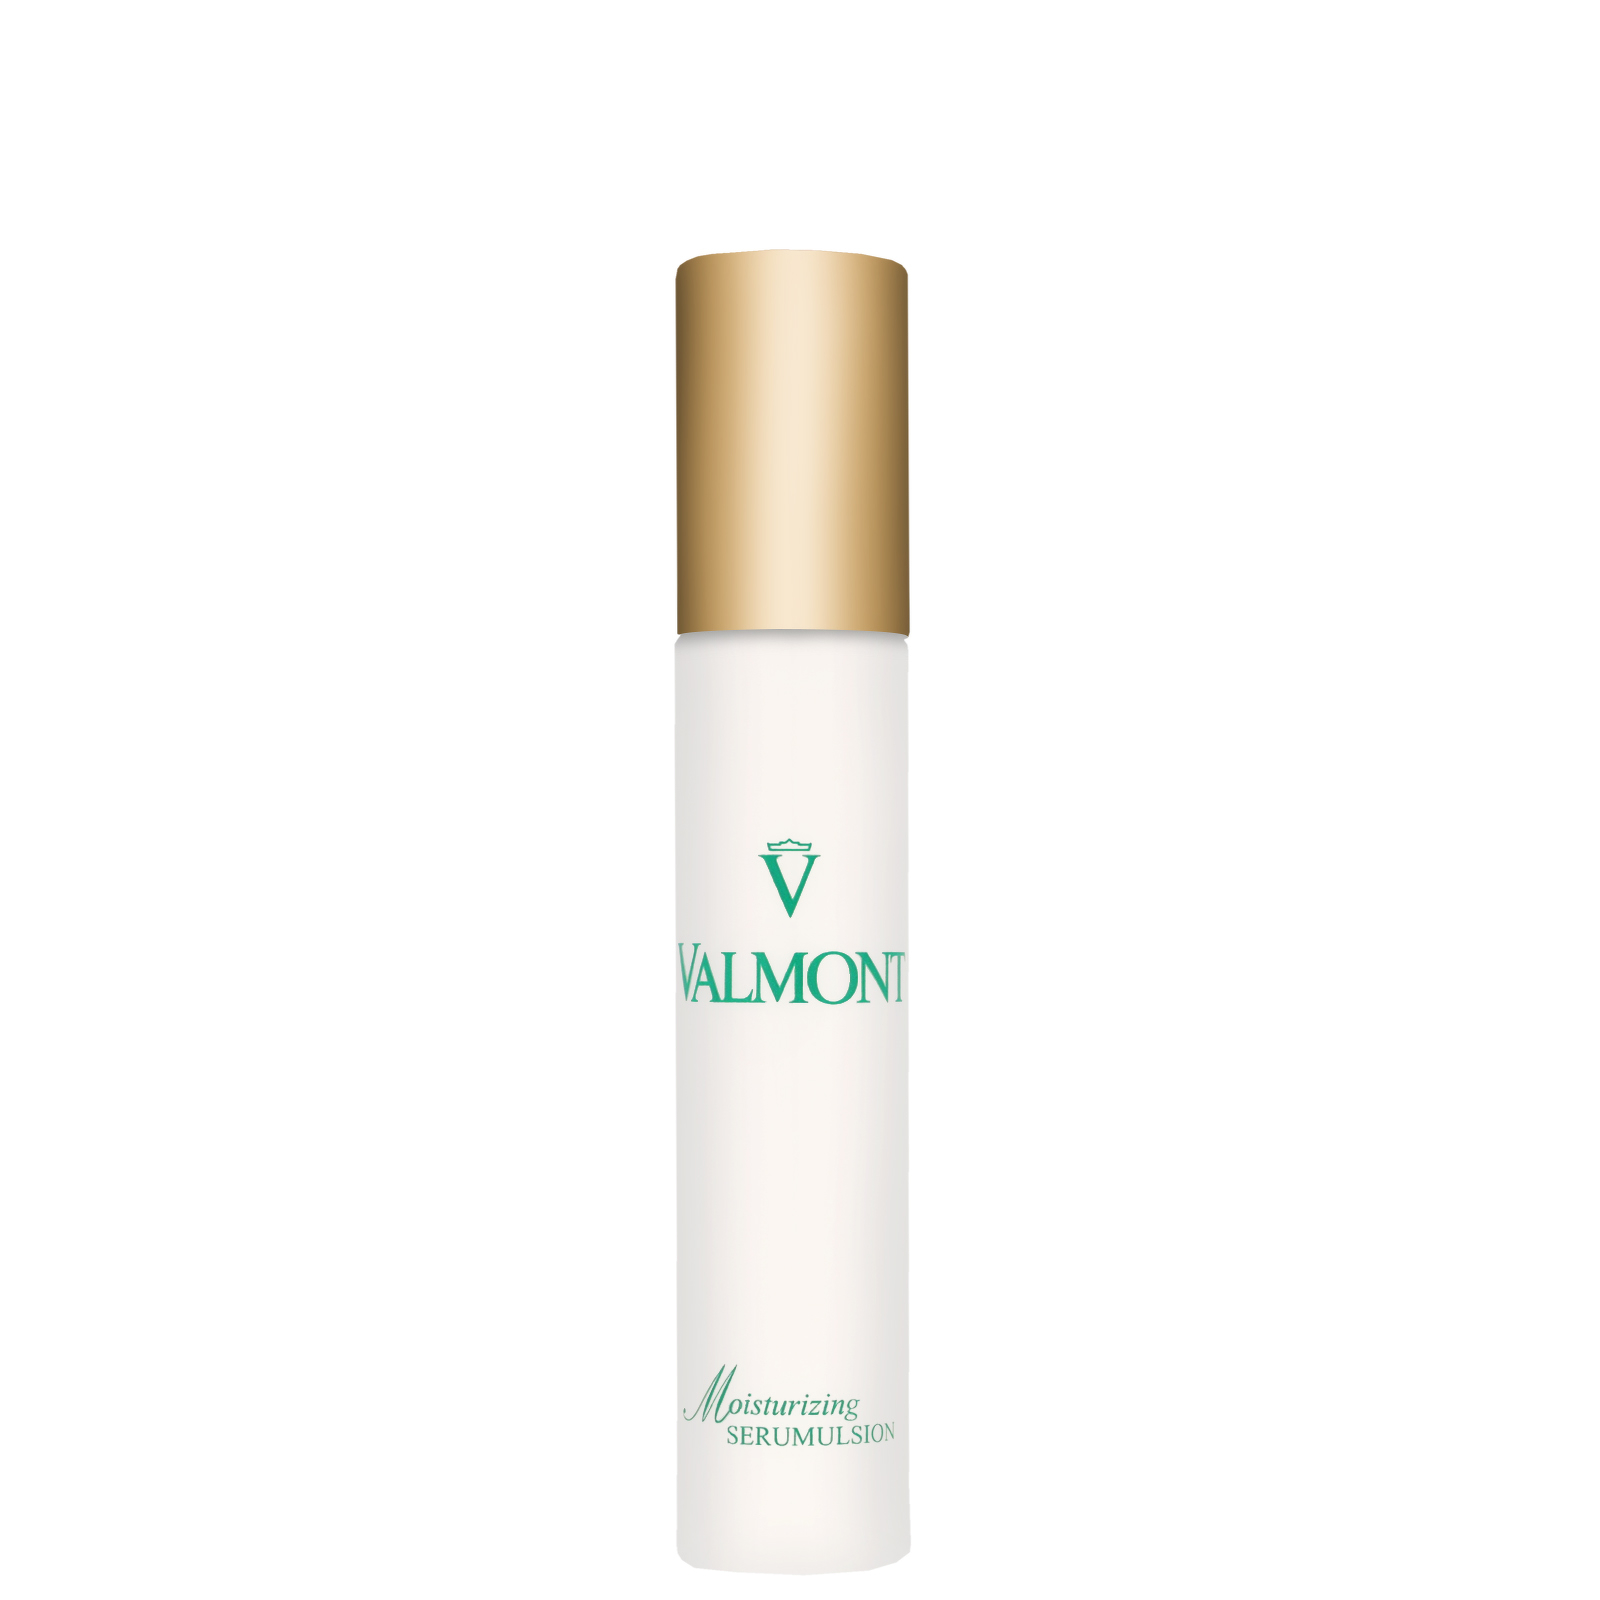 Valmont Hydration Moisturizing Serumulsion 30ml